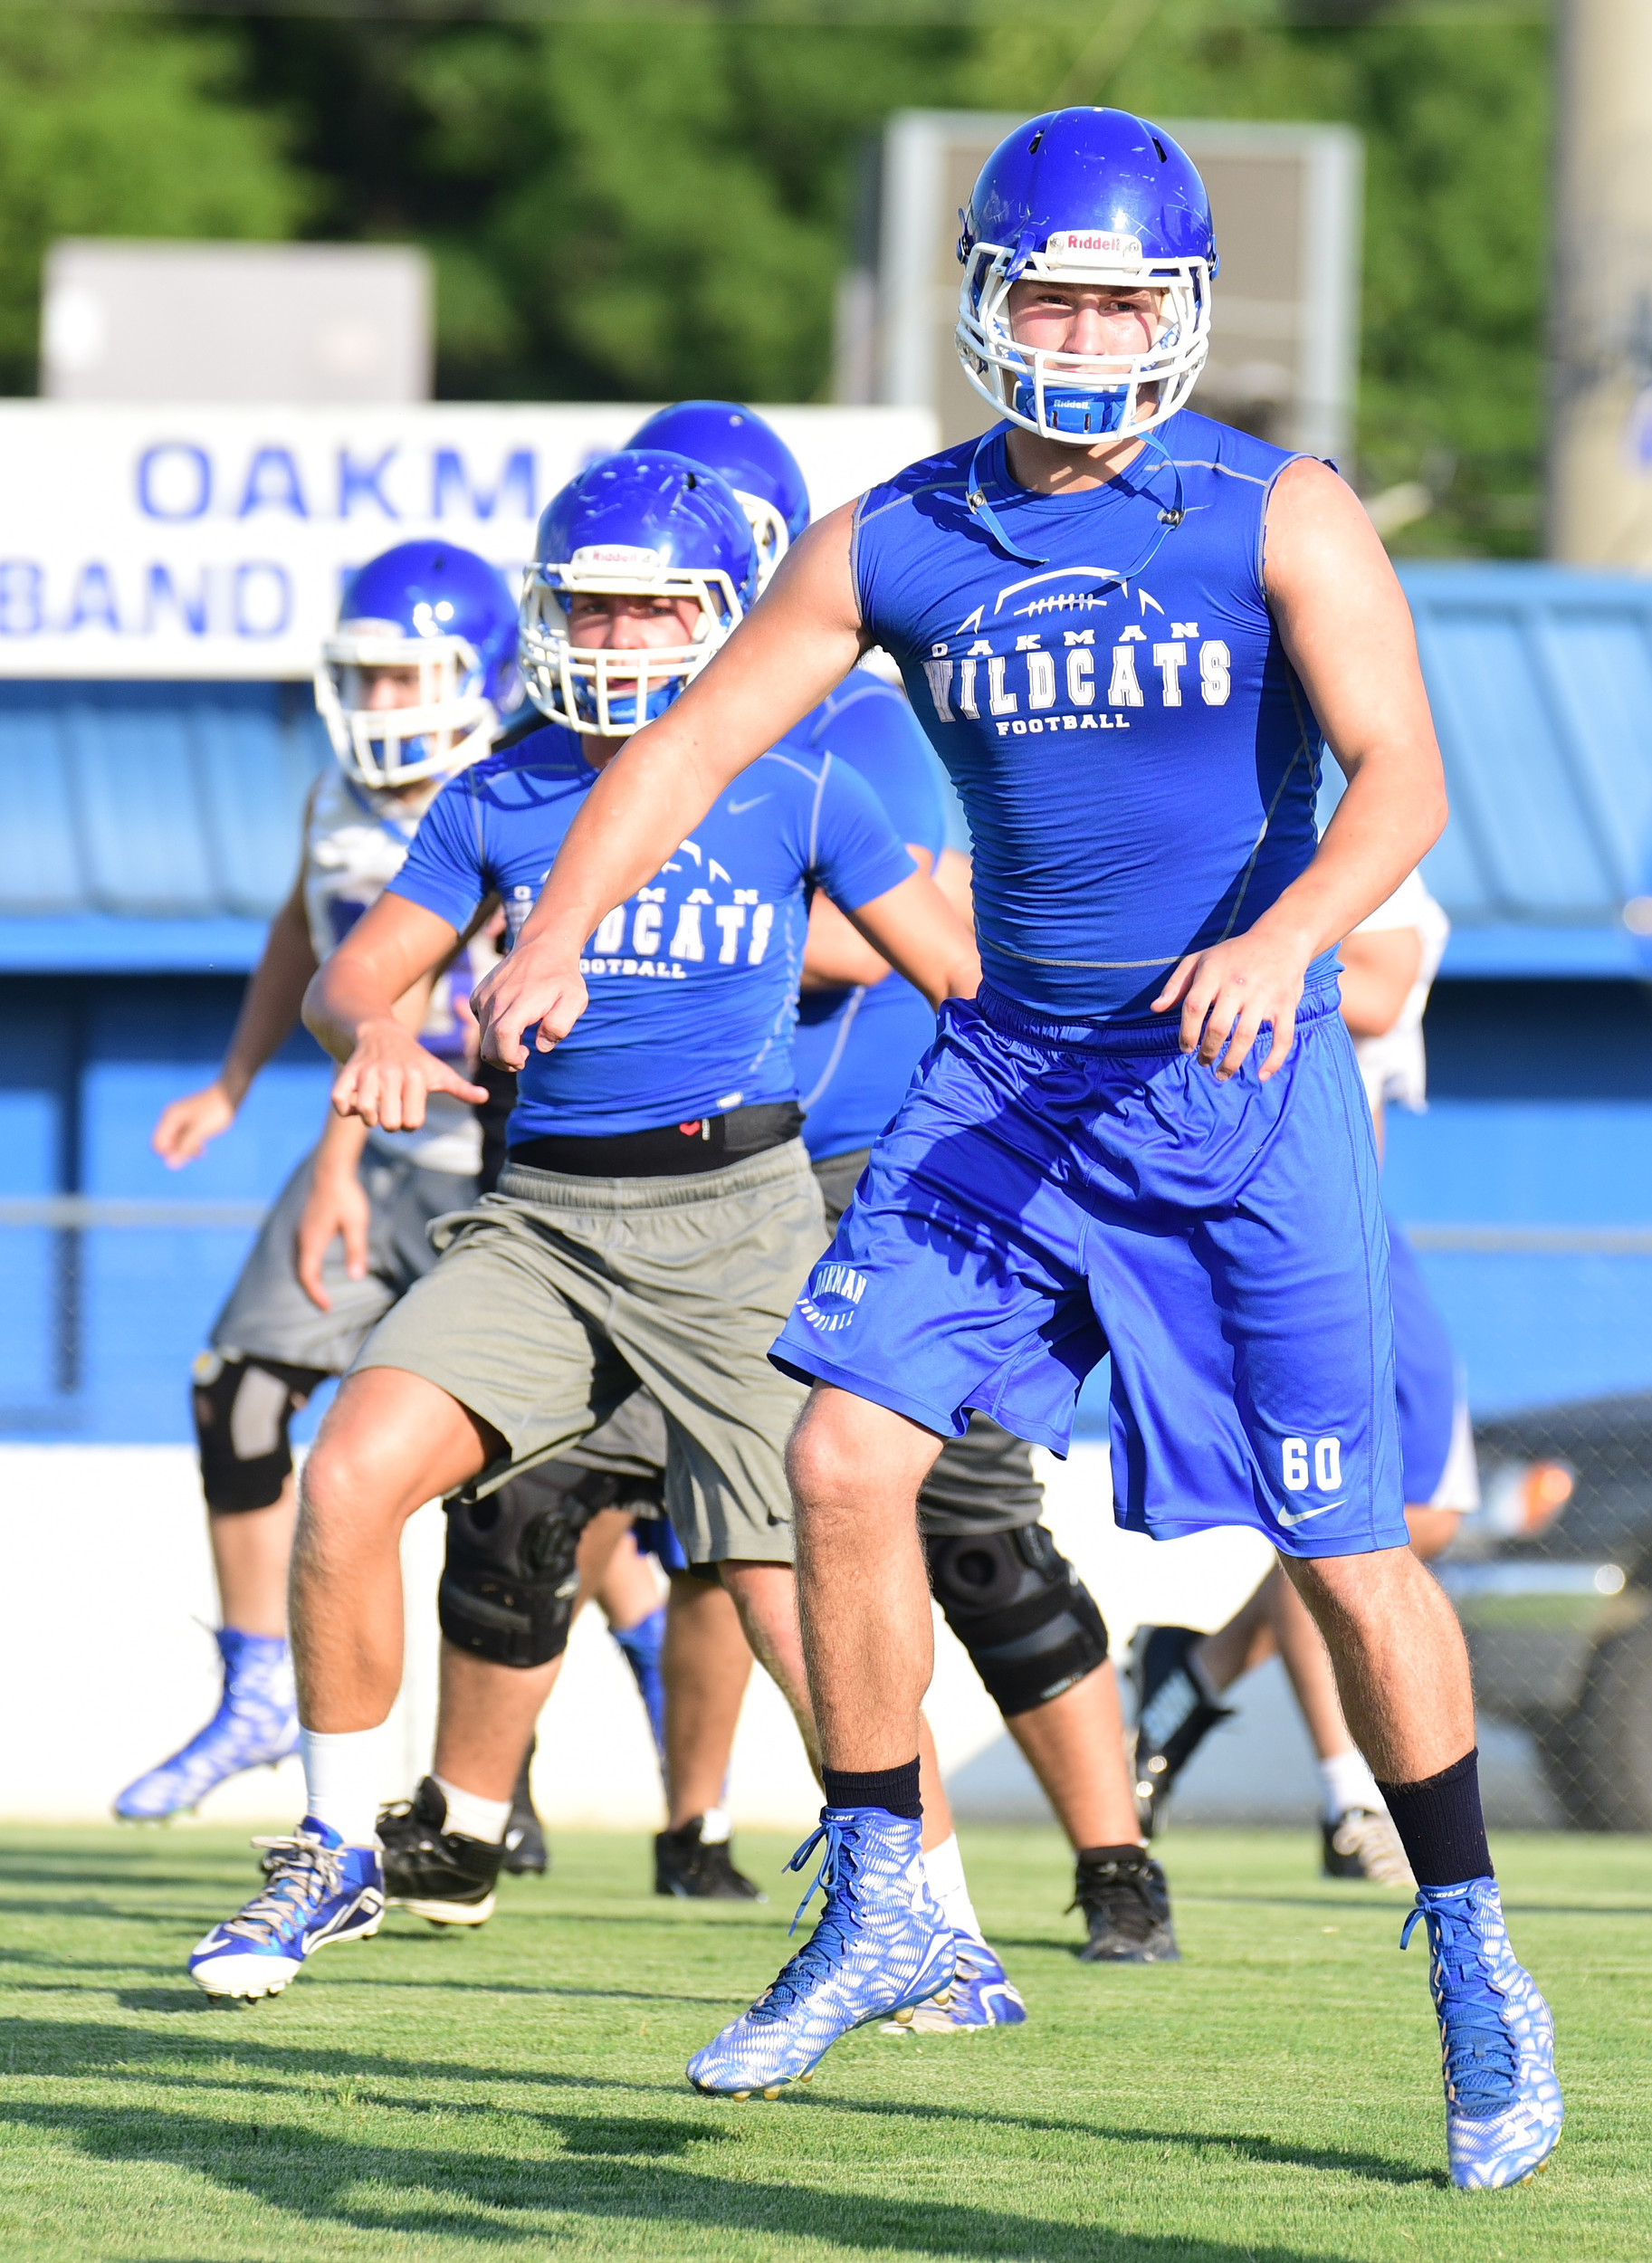 High school football teams hit the practice field | Daily ...